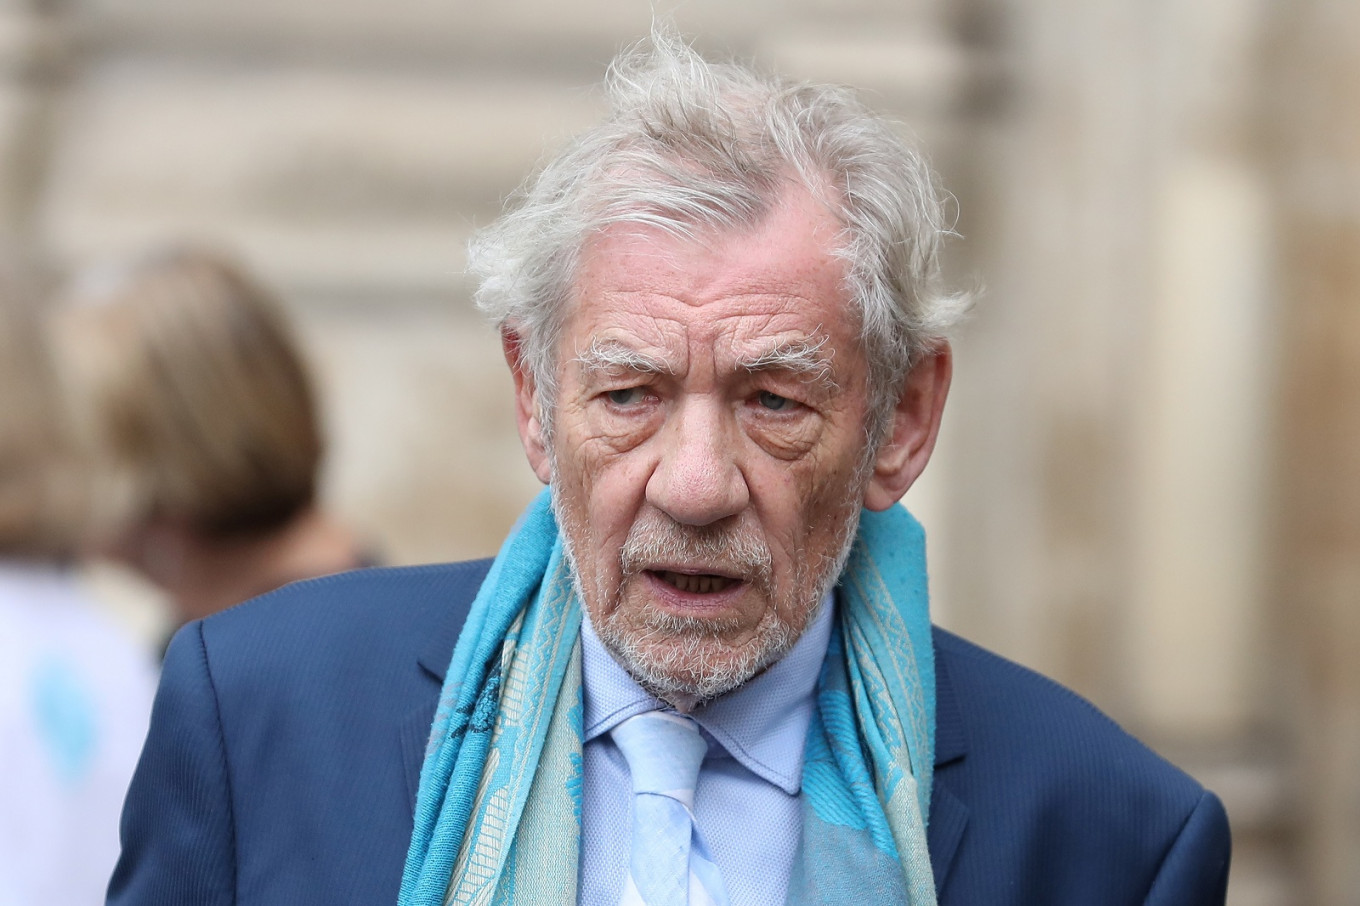 Ian McKellen says Singer, Spacey sex abuse allegations linked to being in the closet